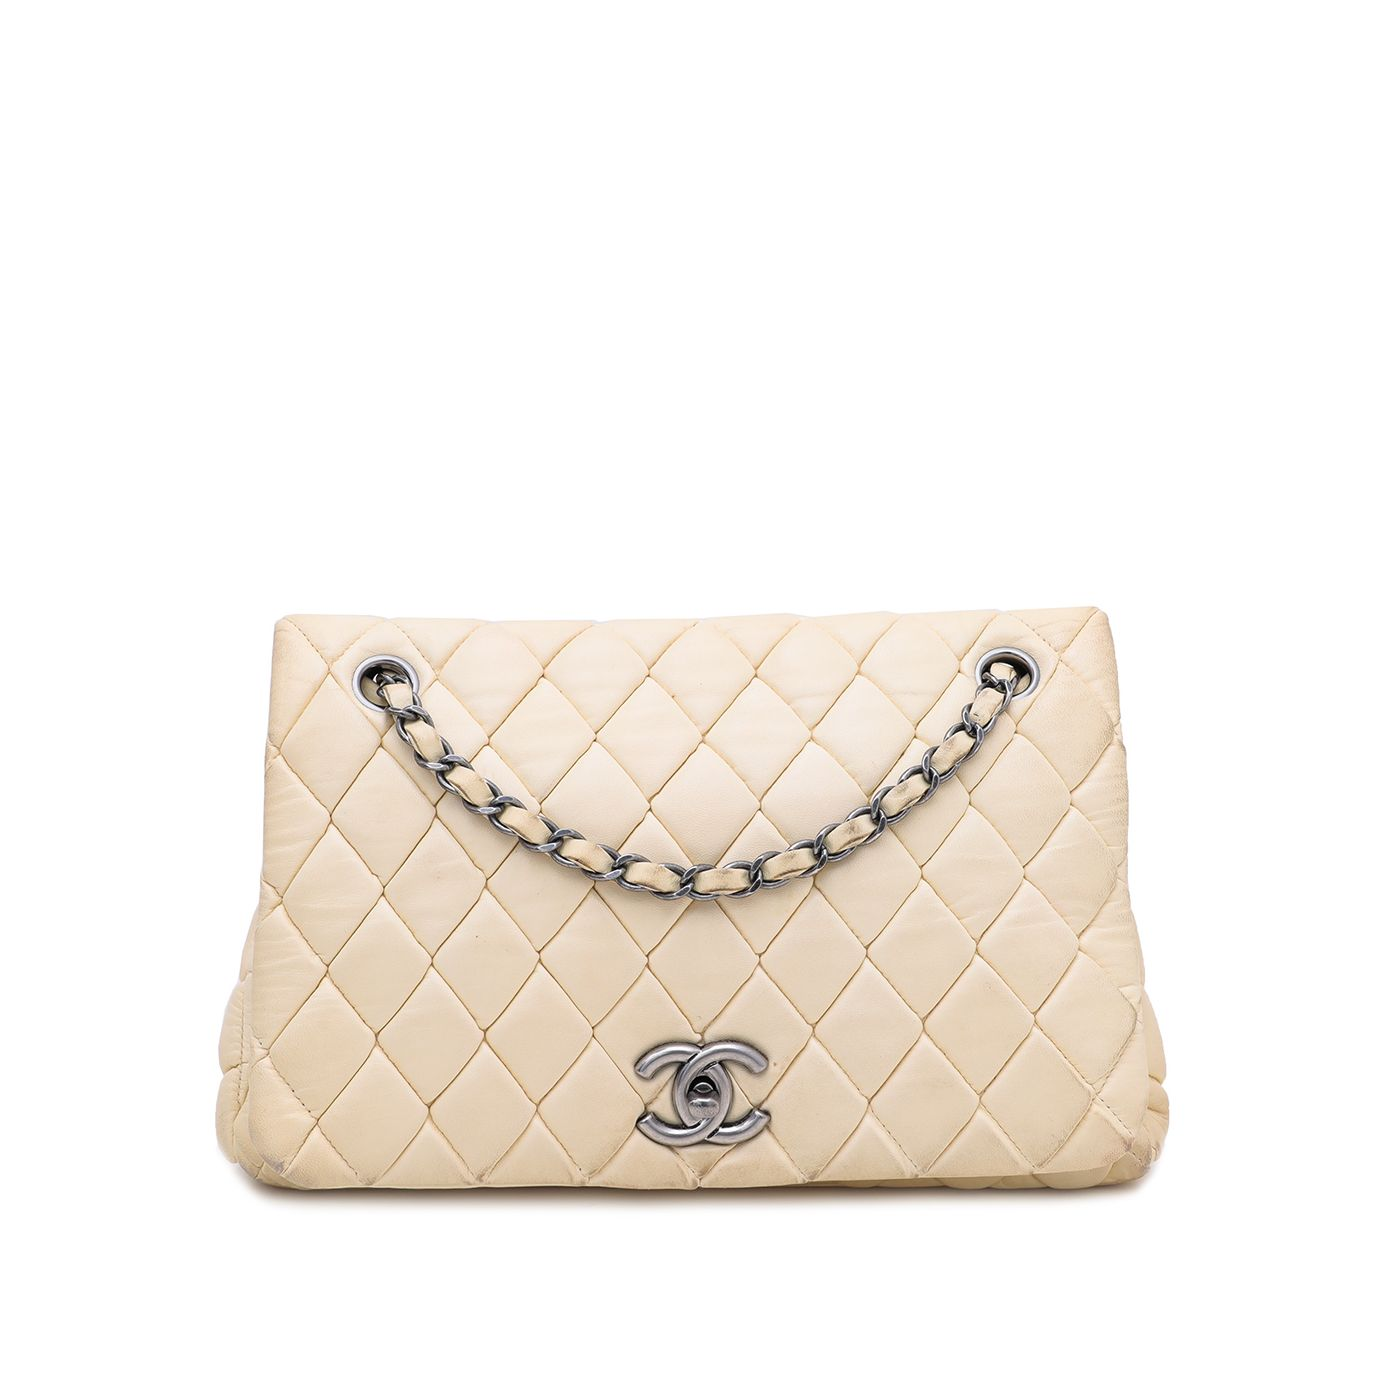 Chanel Beige New Bubble Small Flap Bag